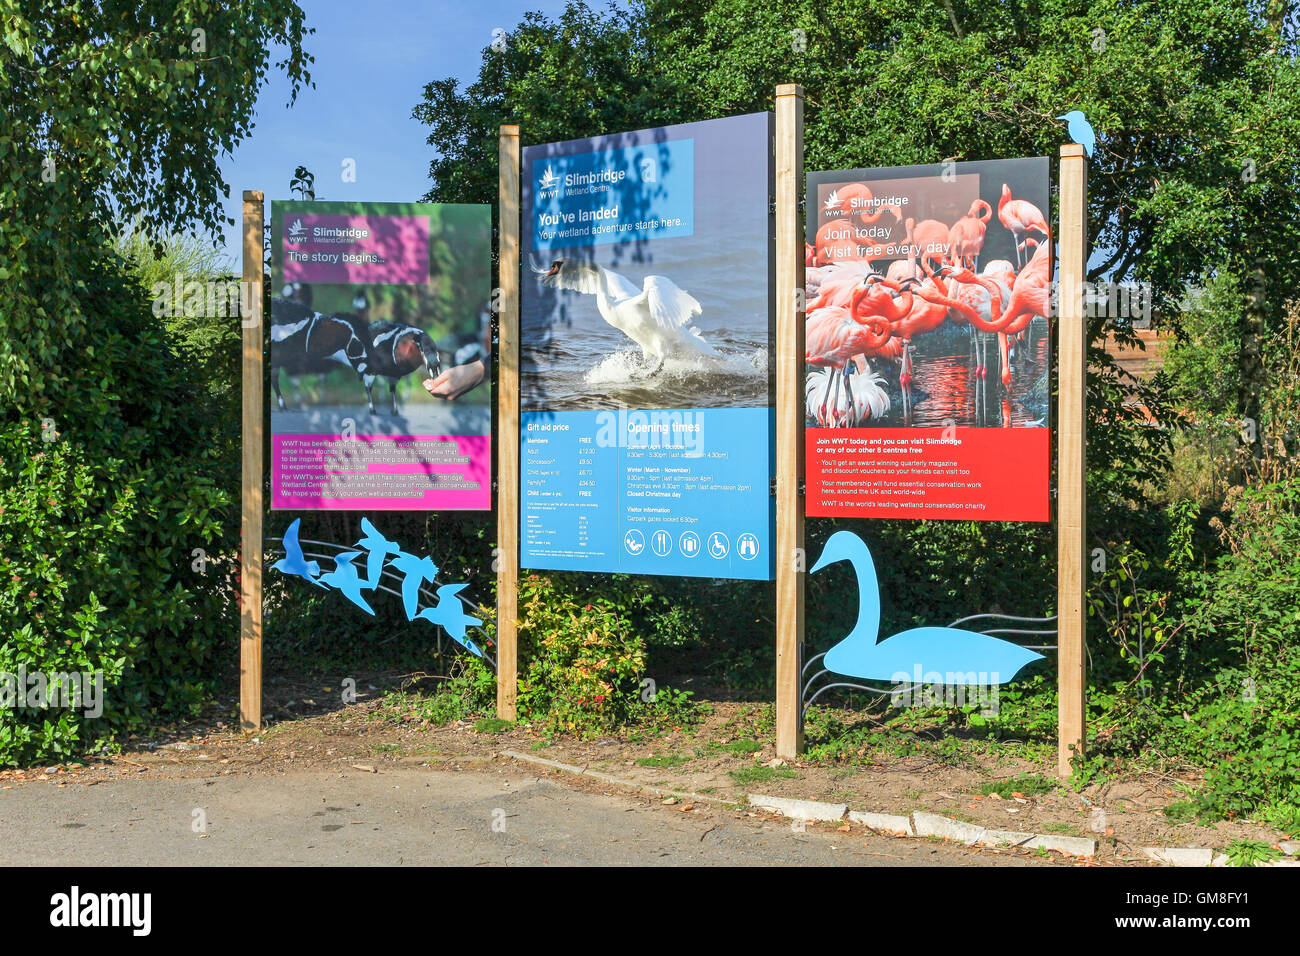 Signs at the entrance to the Wildfowl and Wetlands Trust's Slimbridge Nature Reserve, Slimbridge, Gloucestershire - Stock Image